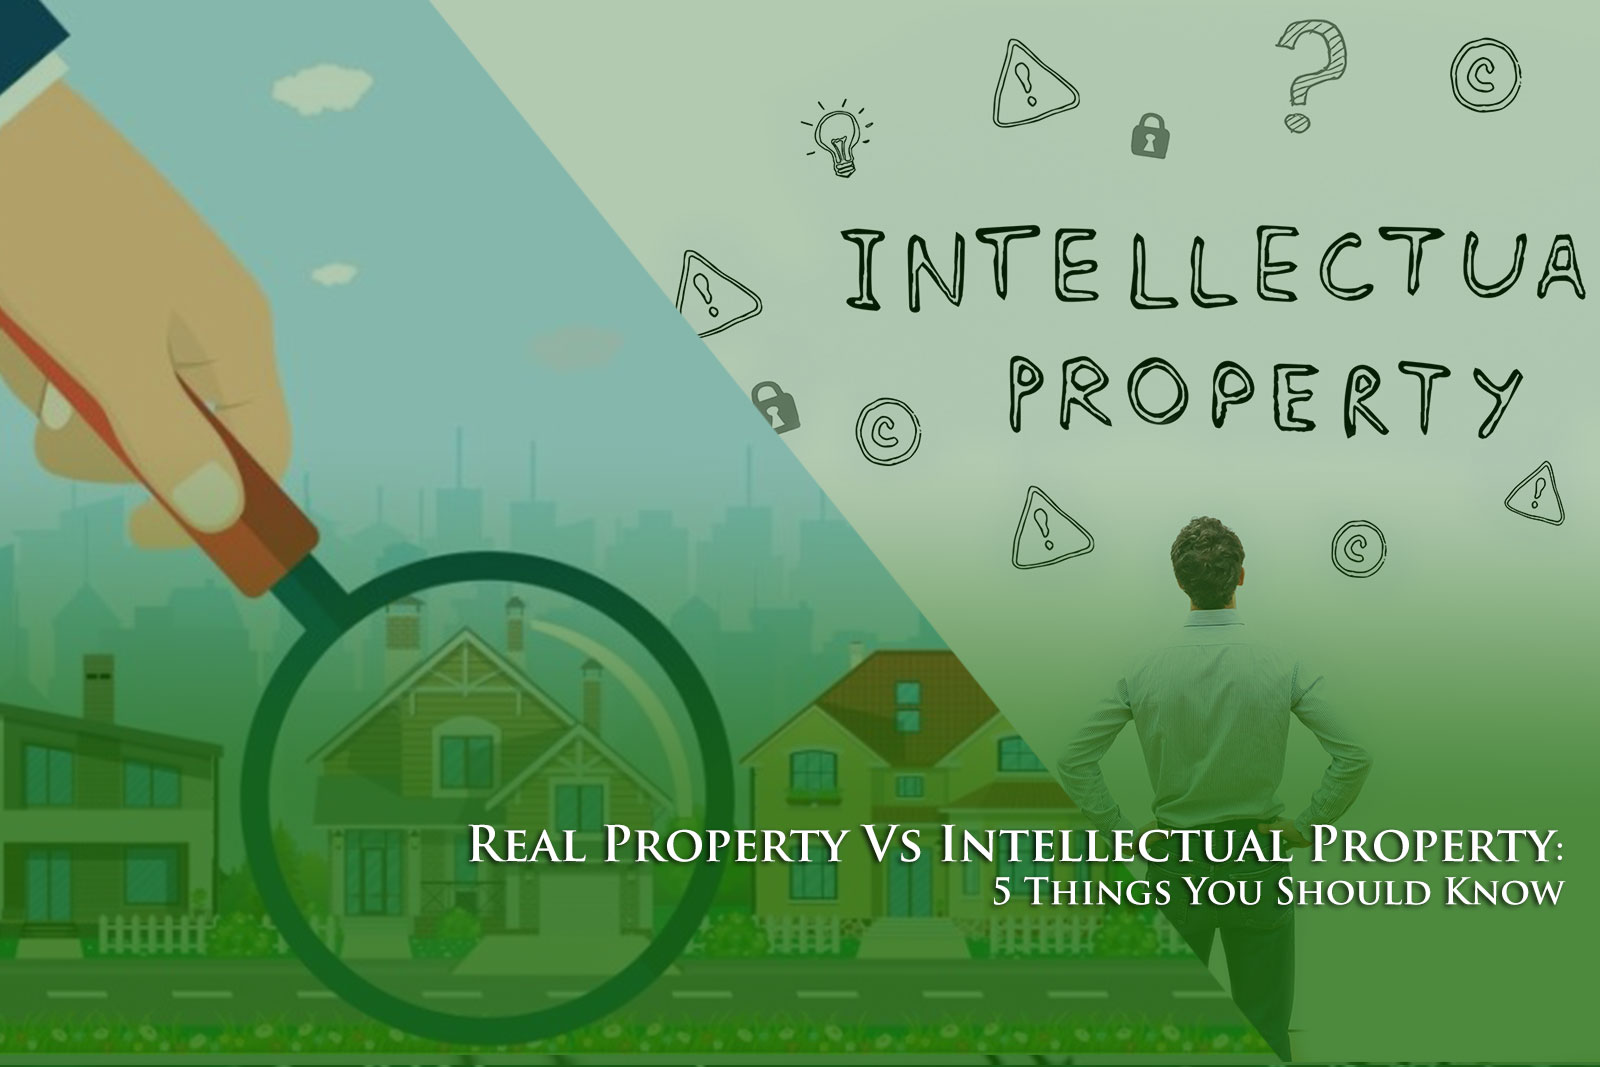 Real Property Vs Intellectual Property: 5 Things You Should Know About Intellectual Property